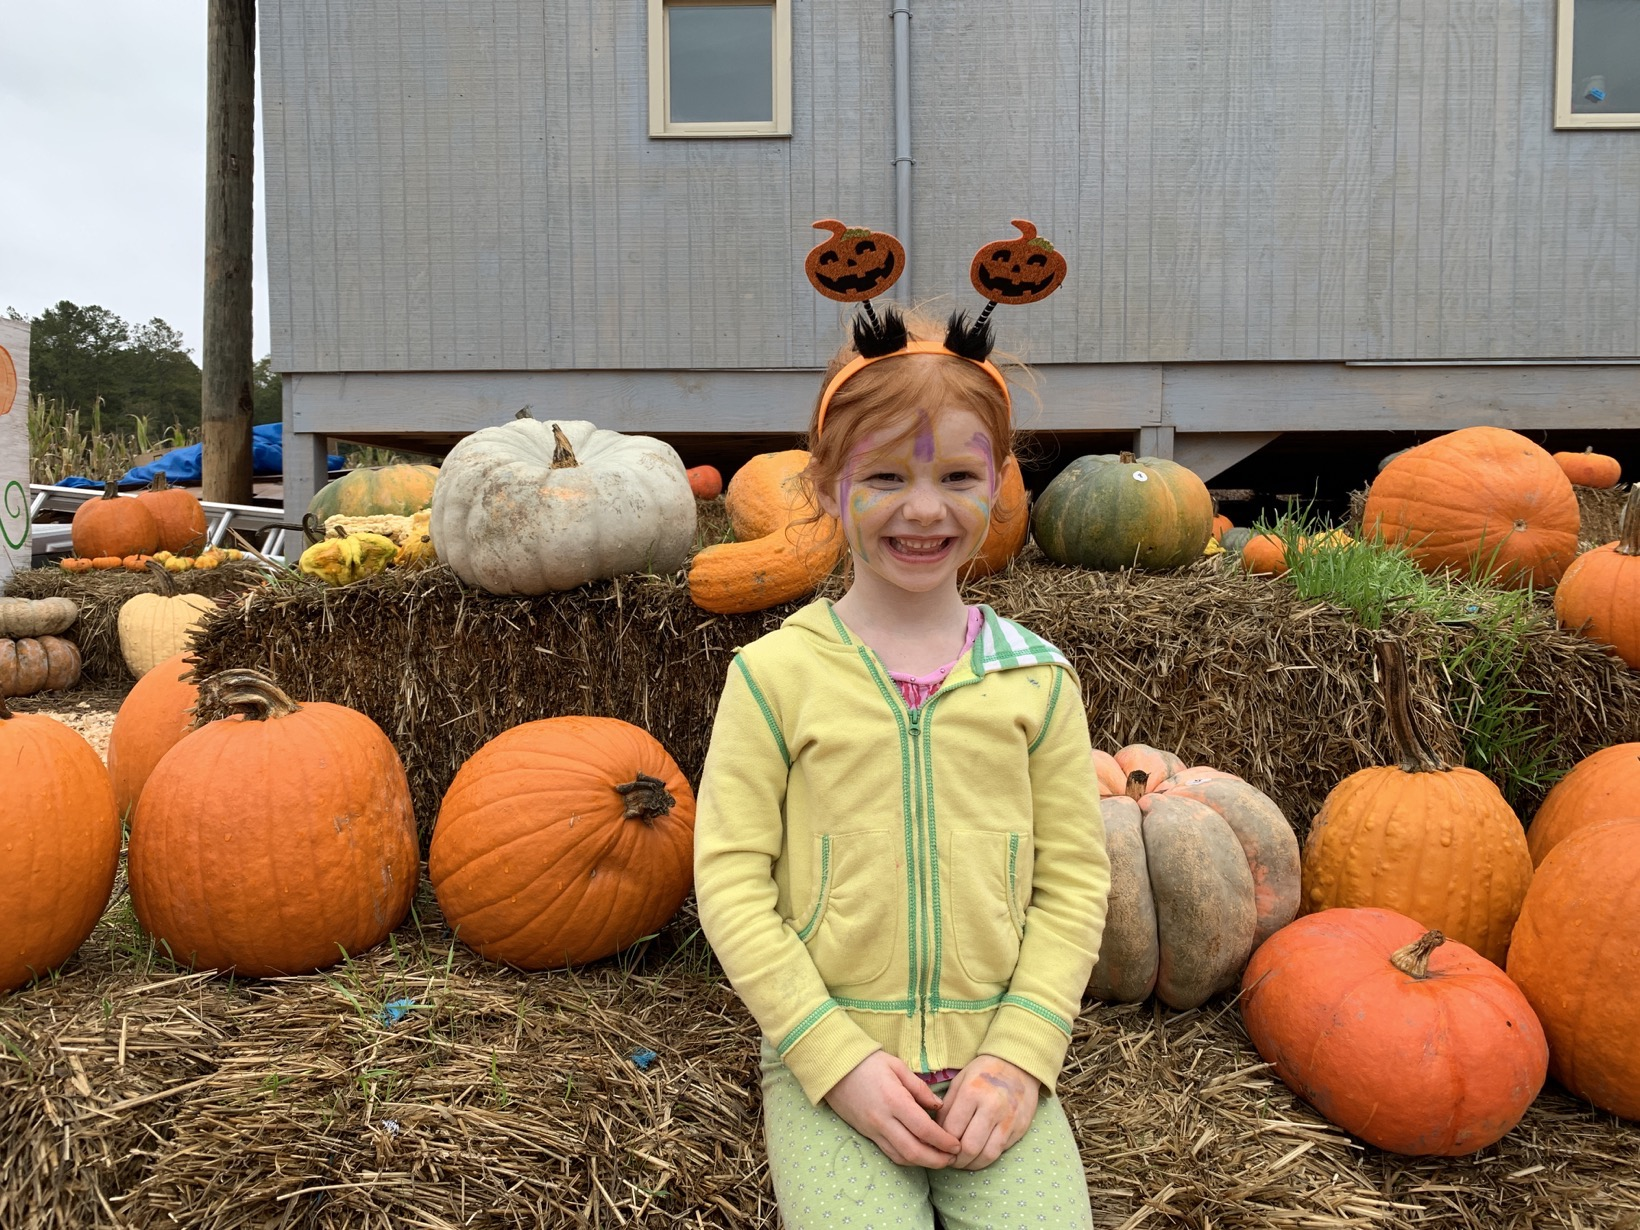 Pumpkin Patch picture 5 year old